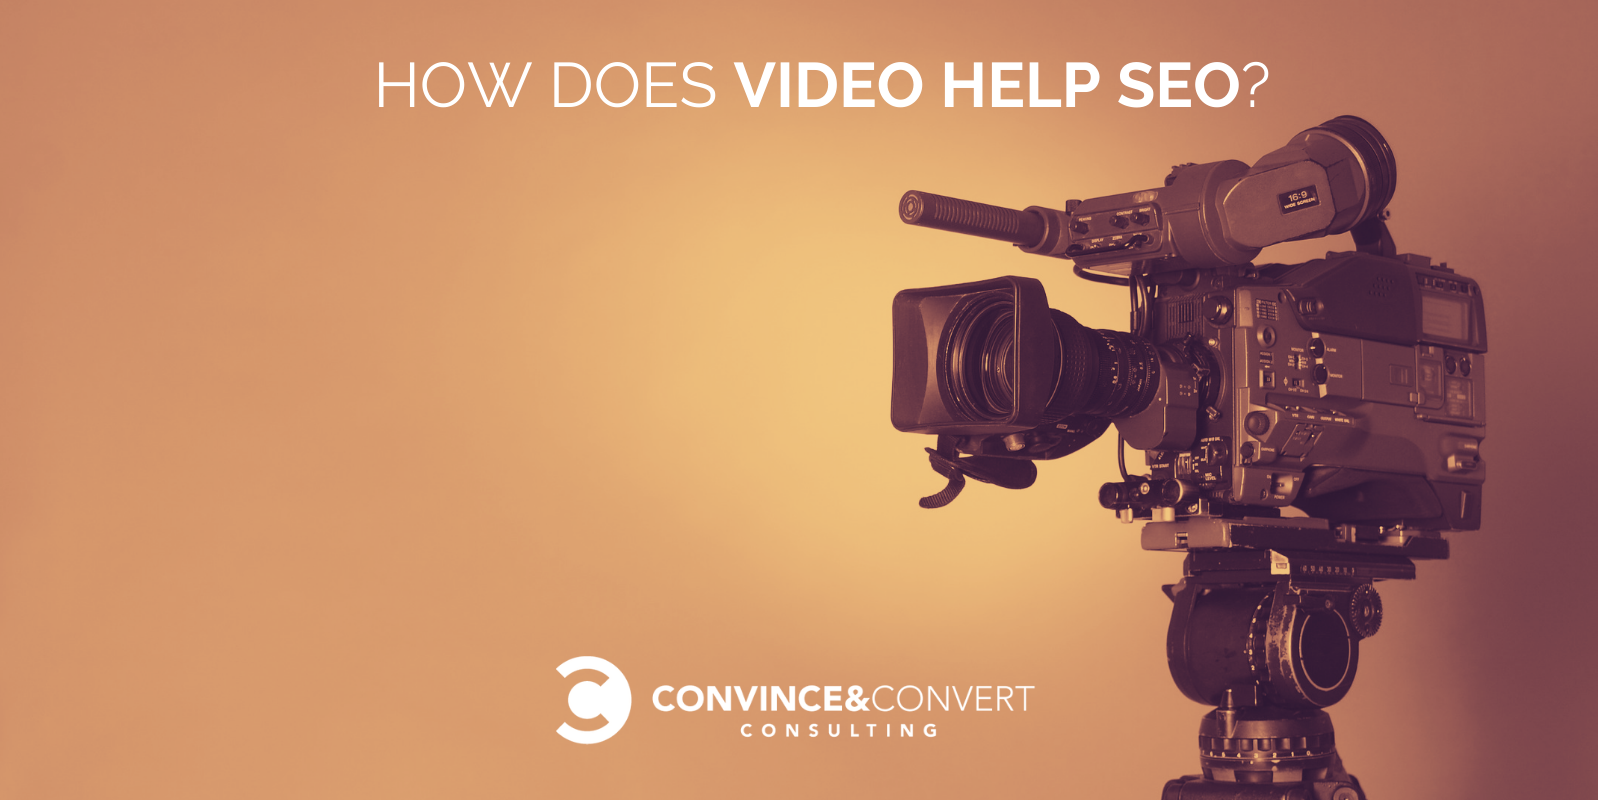 How Does Video Help SEO?